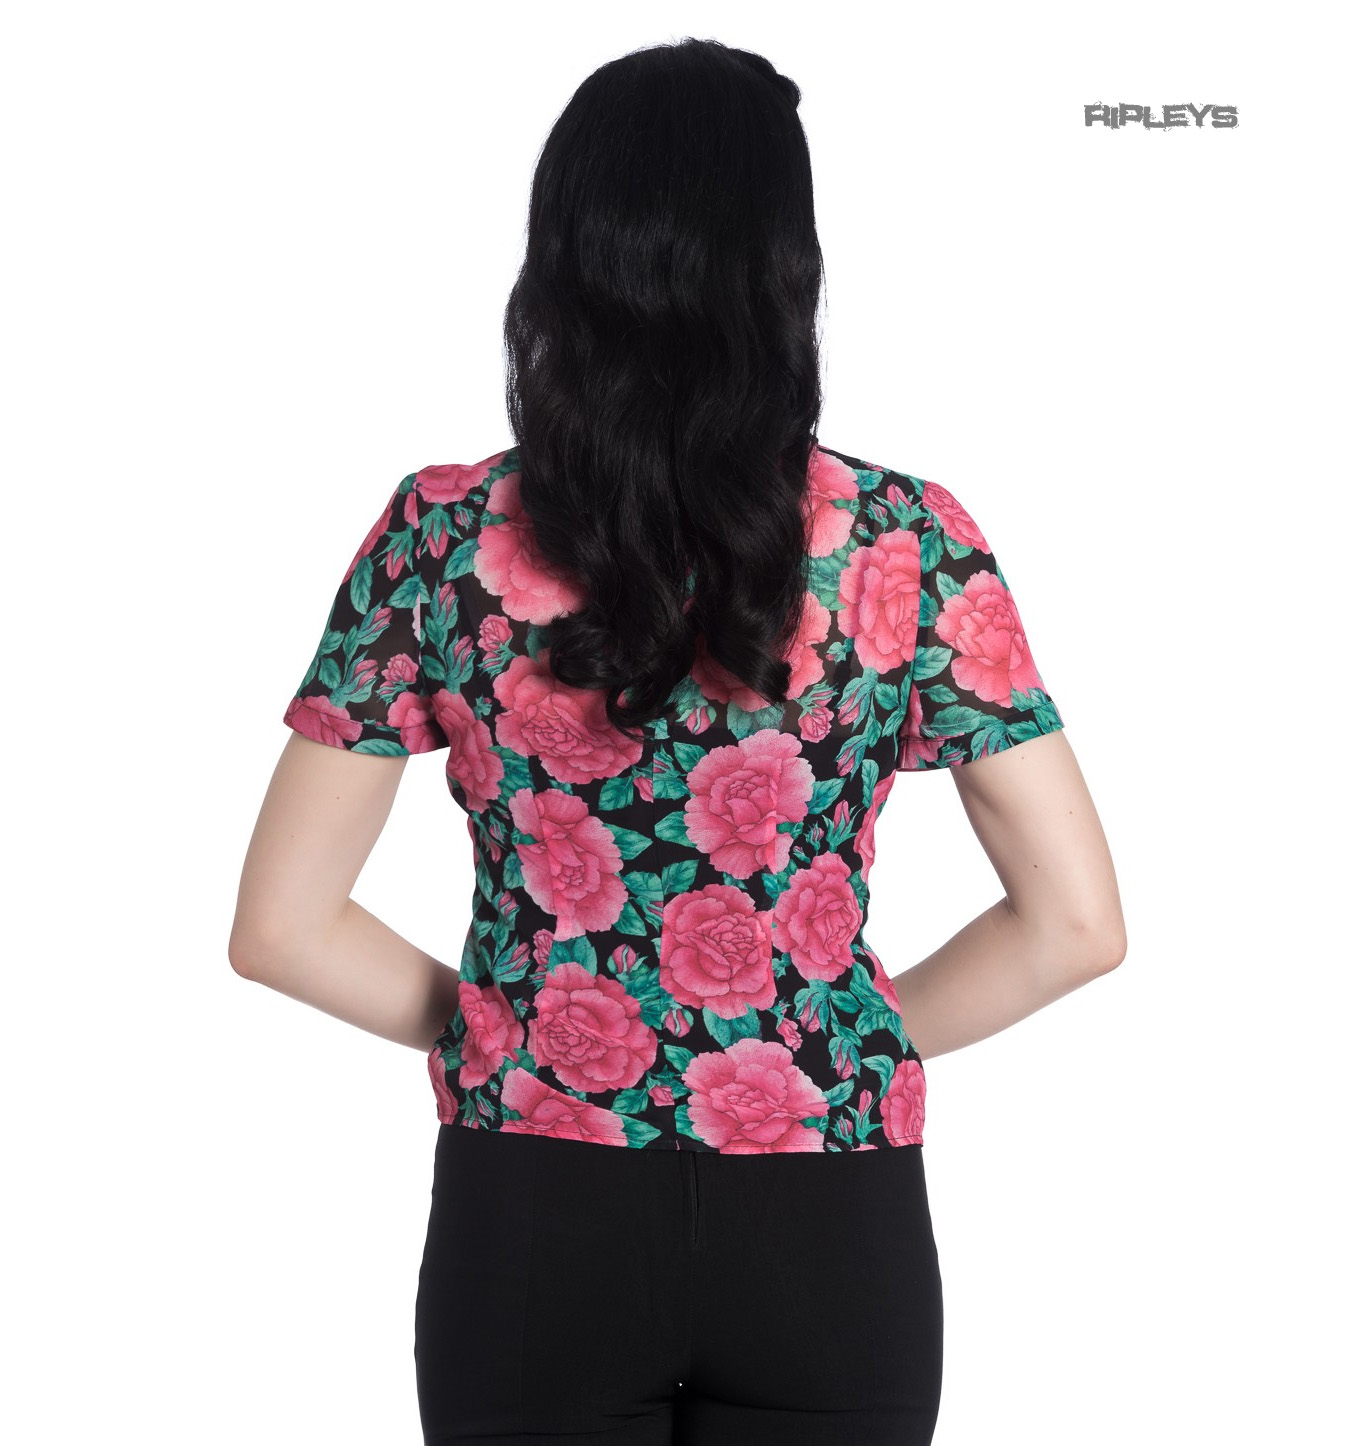 Hell-Bunny-Shirt-Top-Flowers-Roses-EDEN-ROSE-Black-Pink-Blouse-All-Sizes thumbnail 8